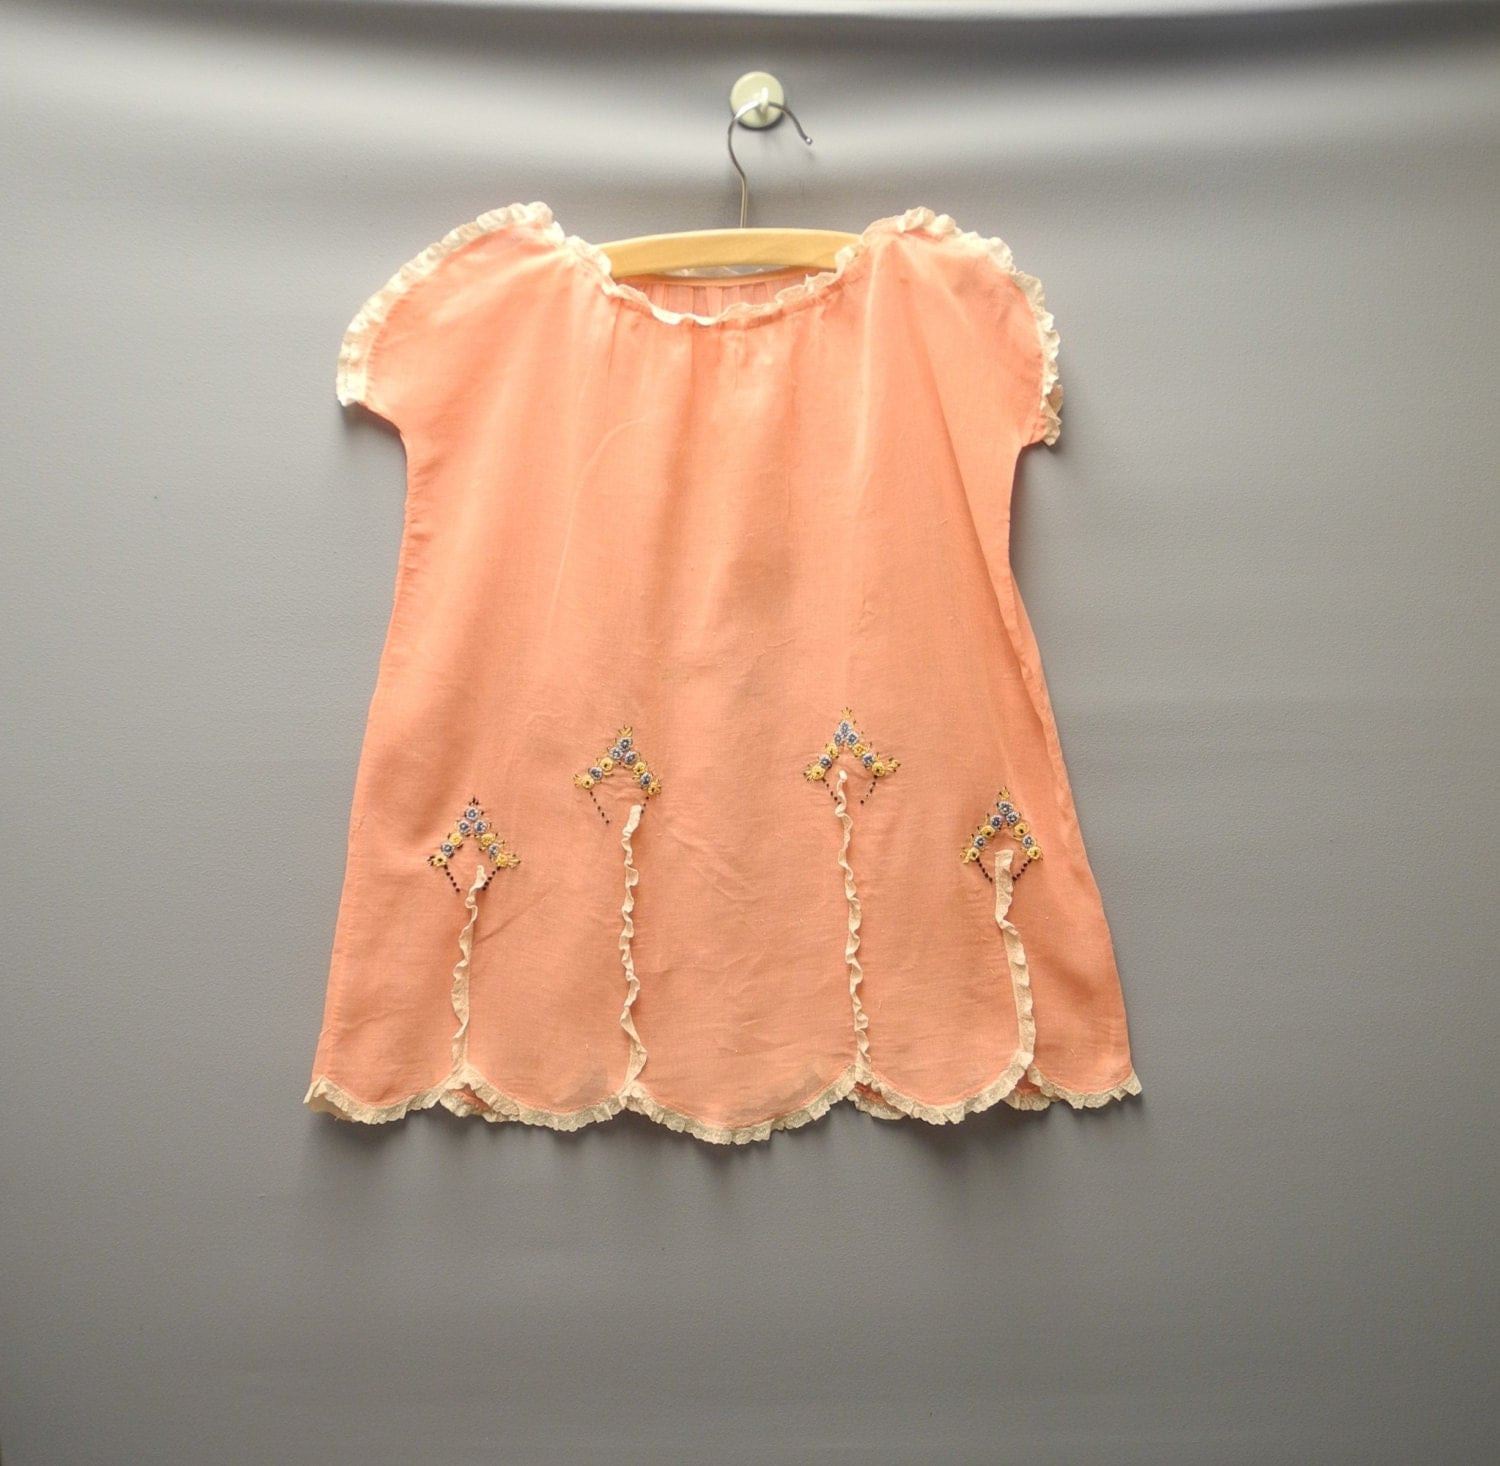 Vintage Baby Dress 1920 s Handmade Coral Pink and Cream